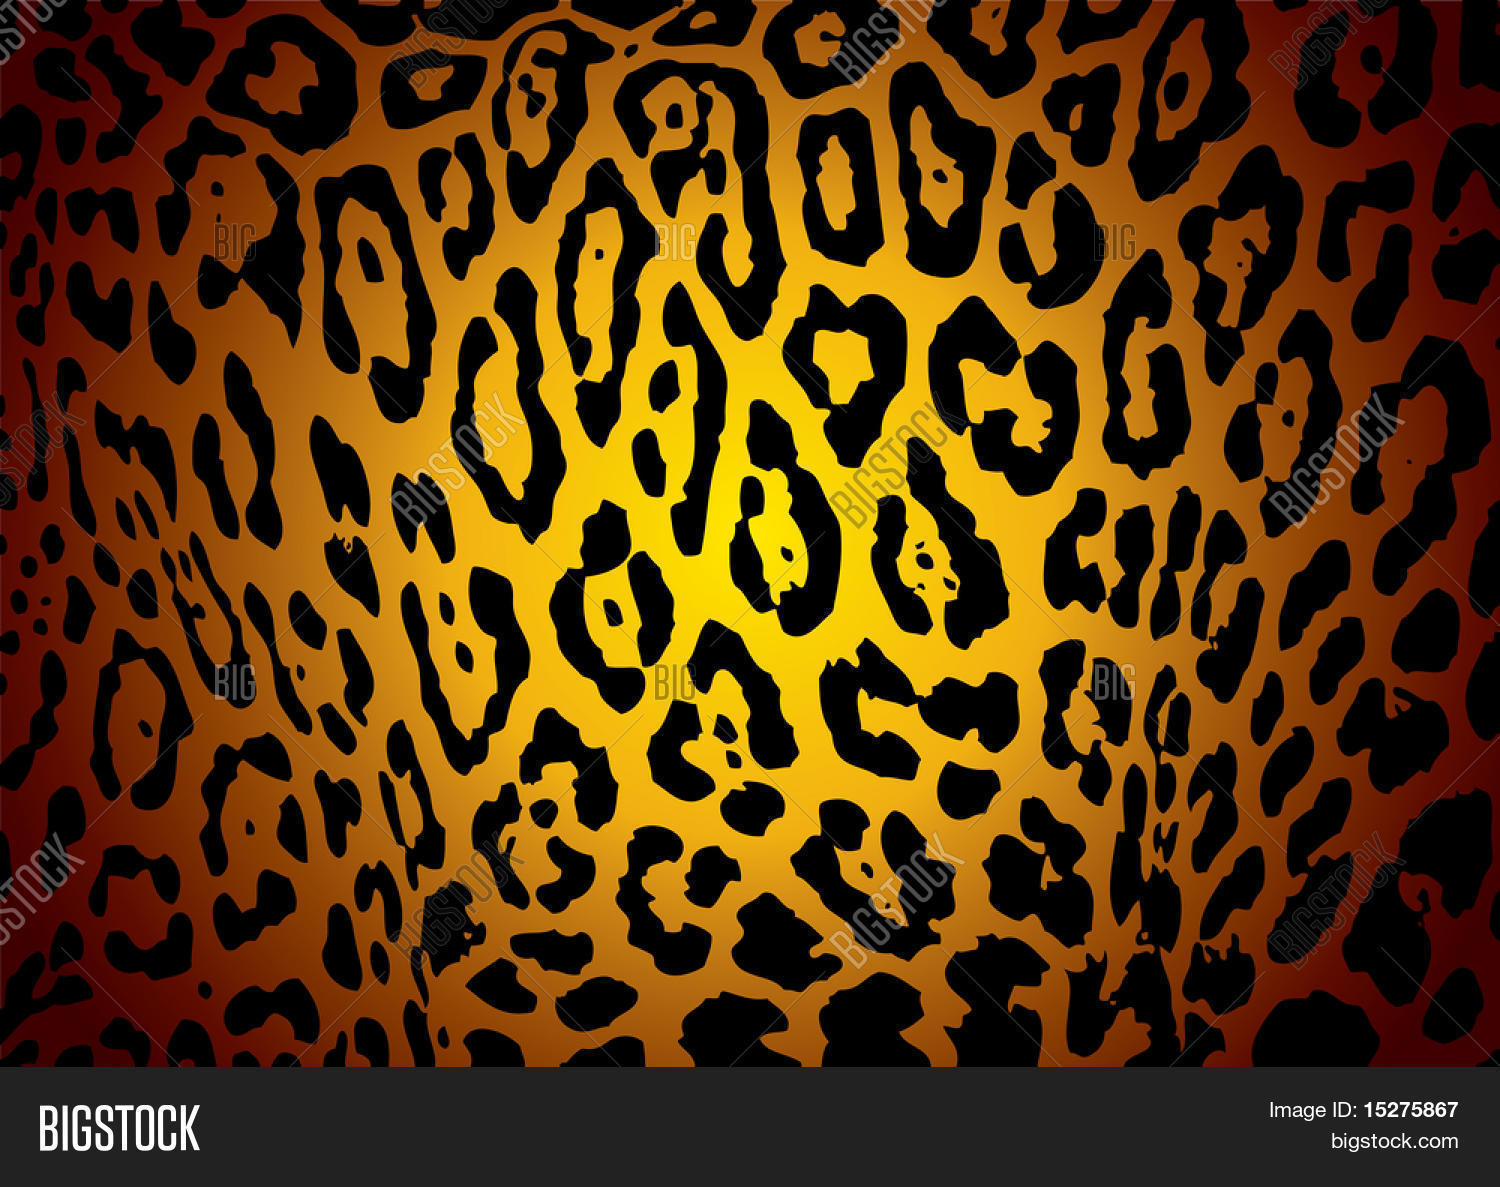 Illustrated Yellow And Black Jaguar Skin Background With Camouflage Effect